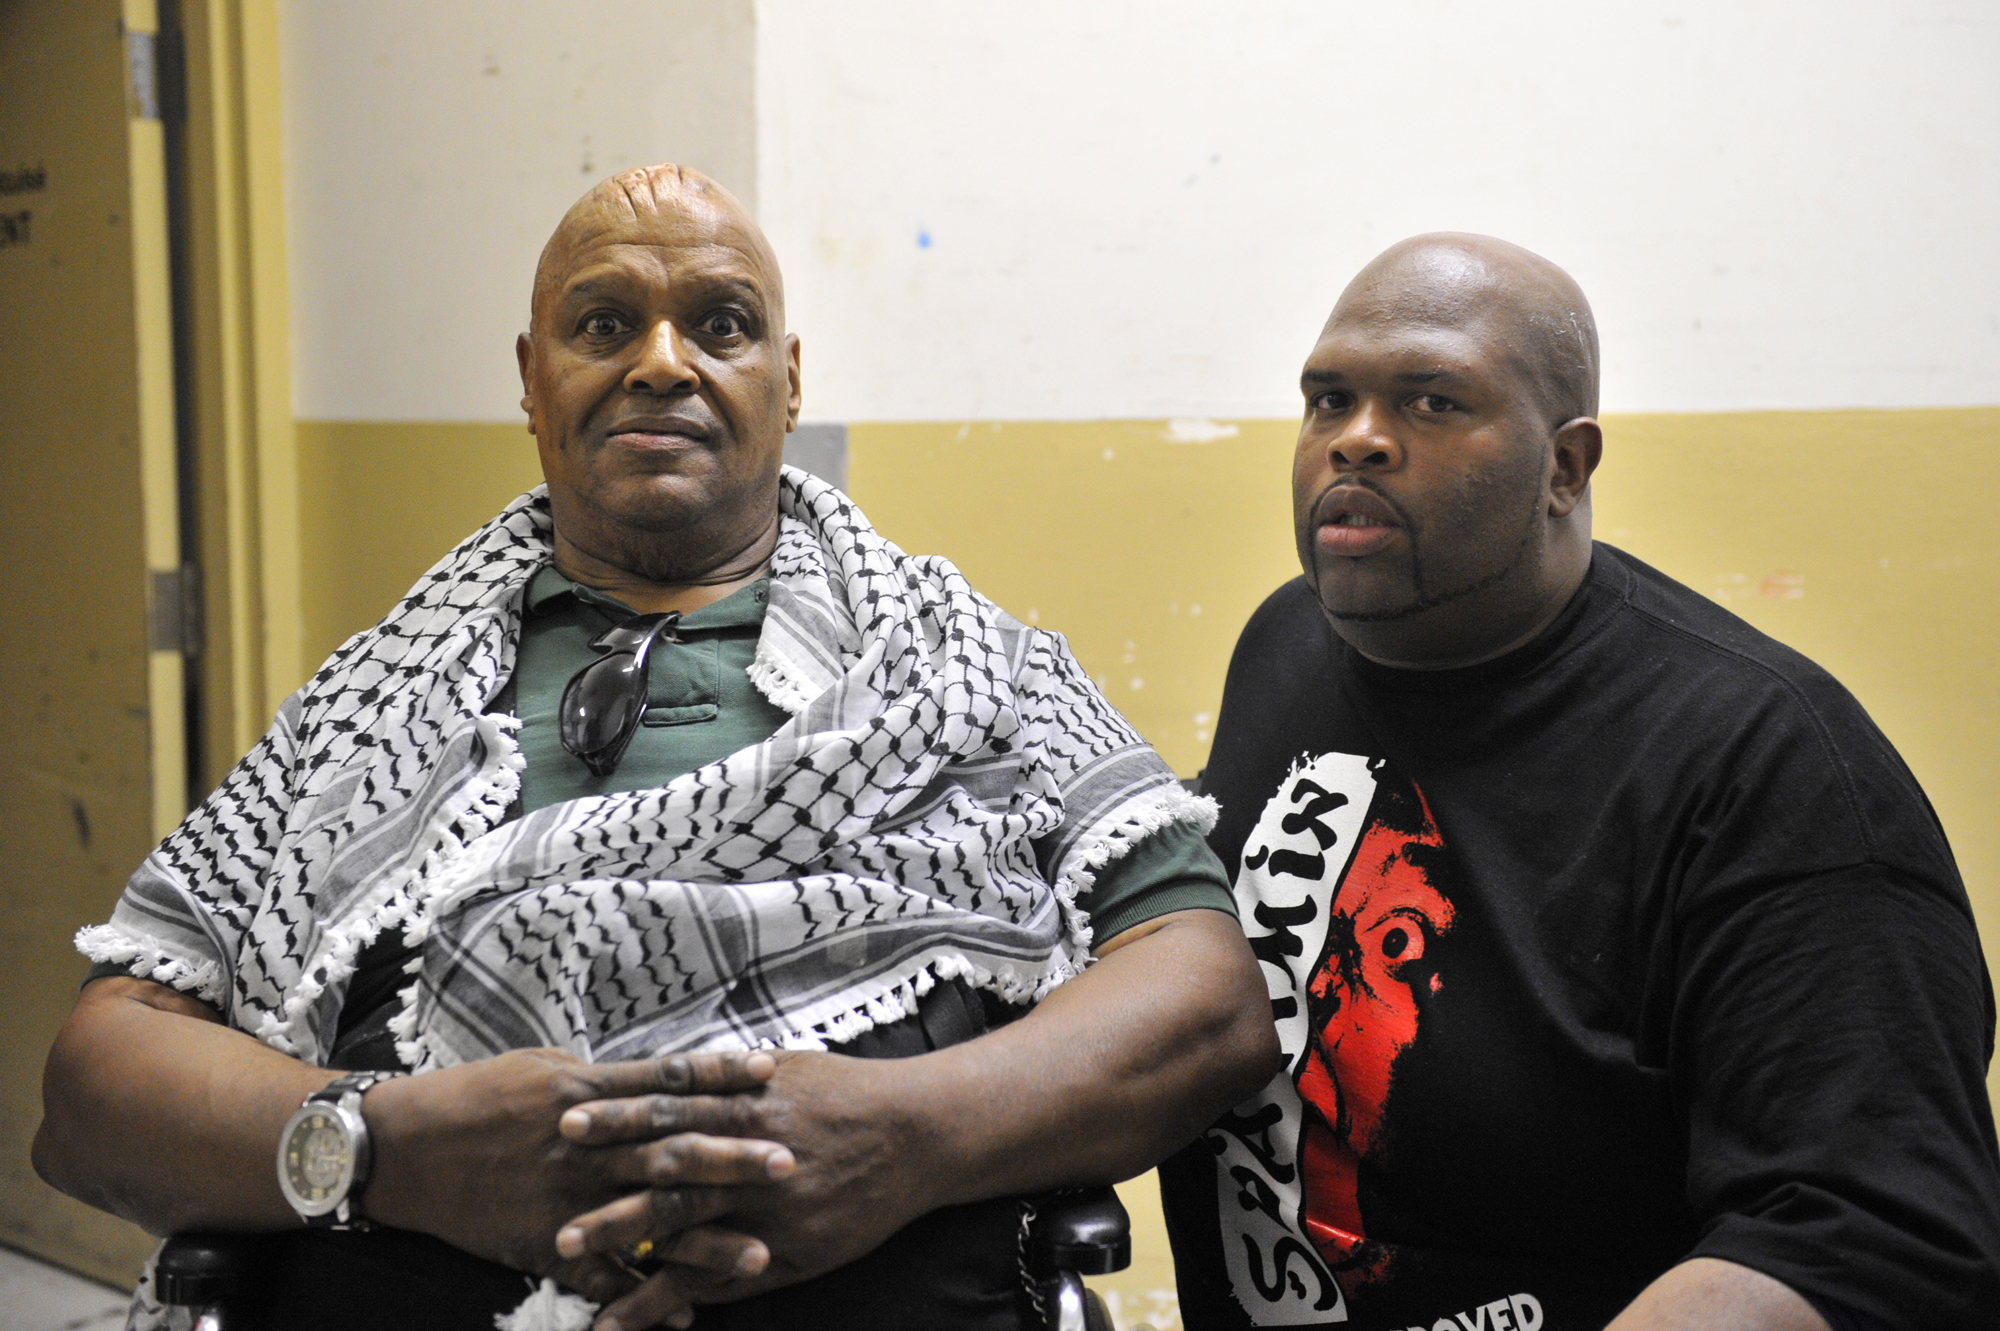 File:Soa Amin with Abdullah The Butcher jpg - Wikimedia Commons